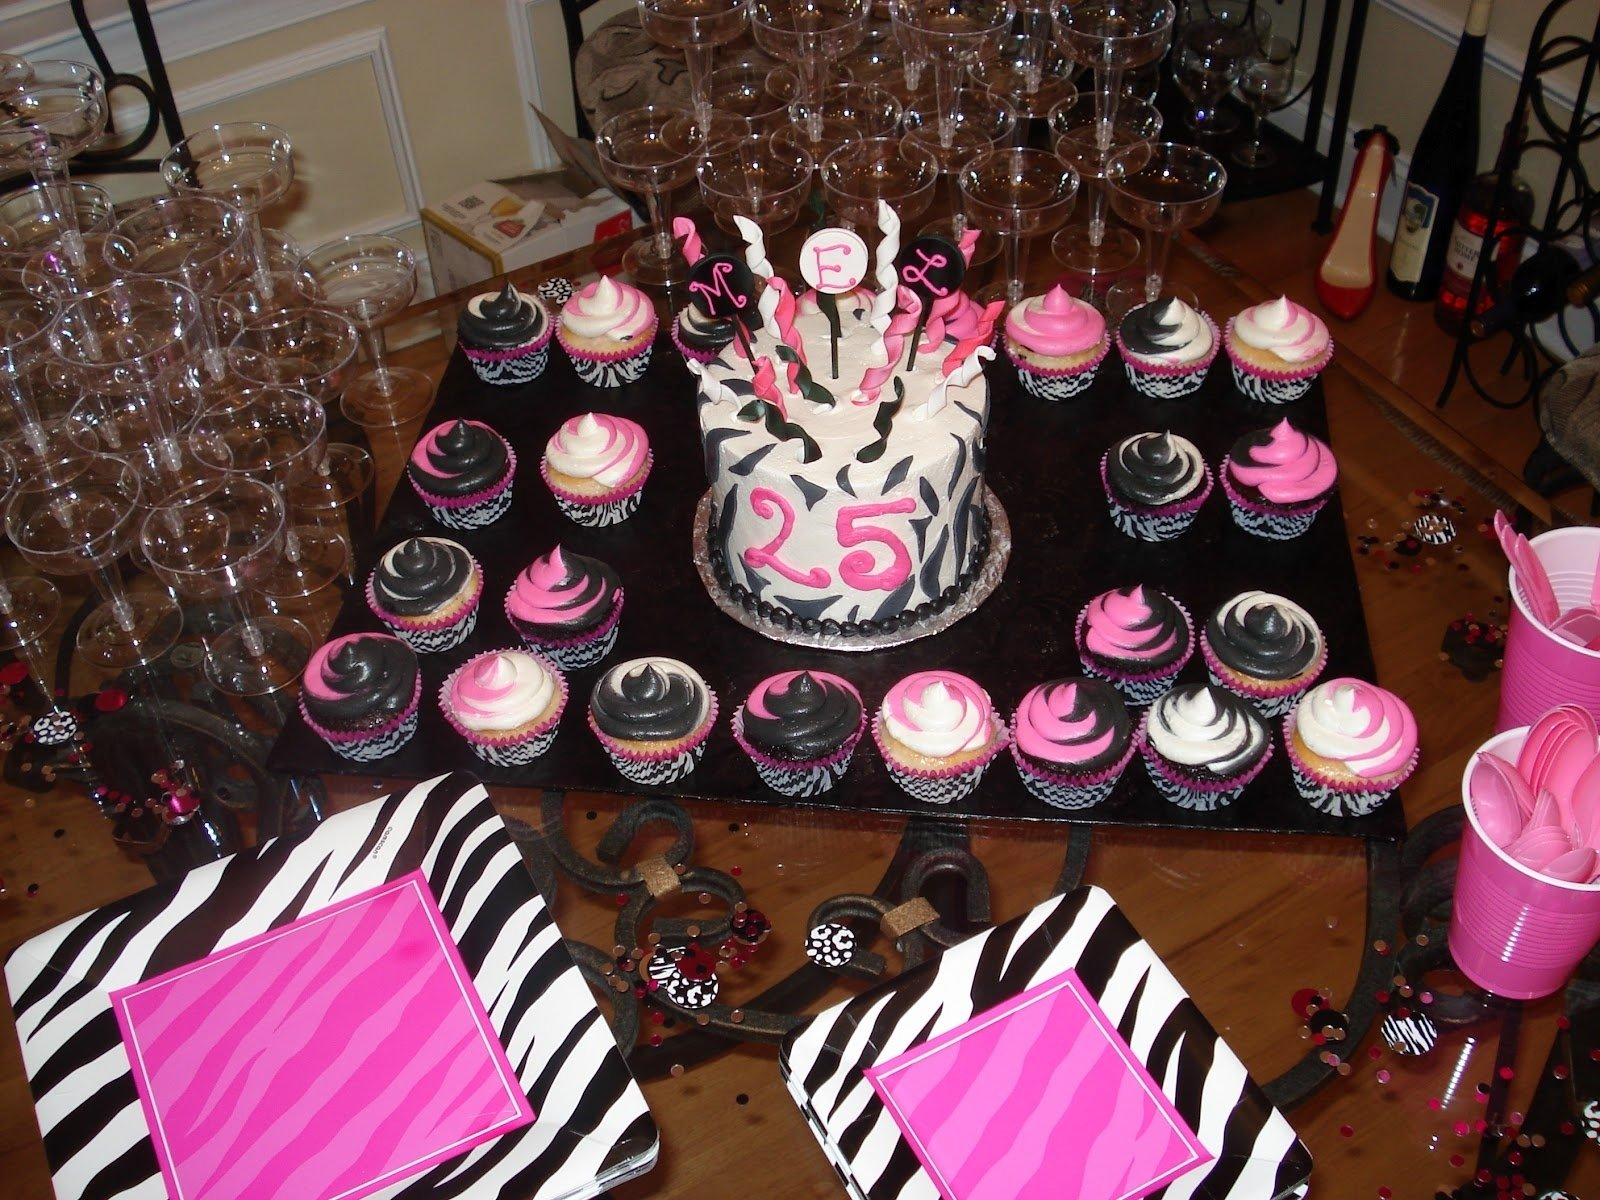 10 Unique Birthday Dinner Ideas For Her mels surprise 25th birthday party carolina charm 3 2020